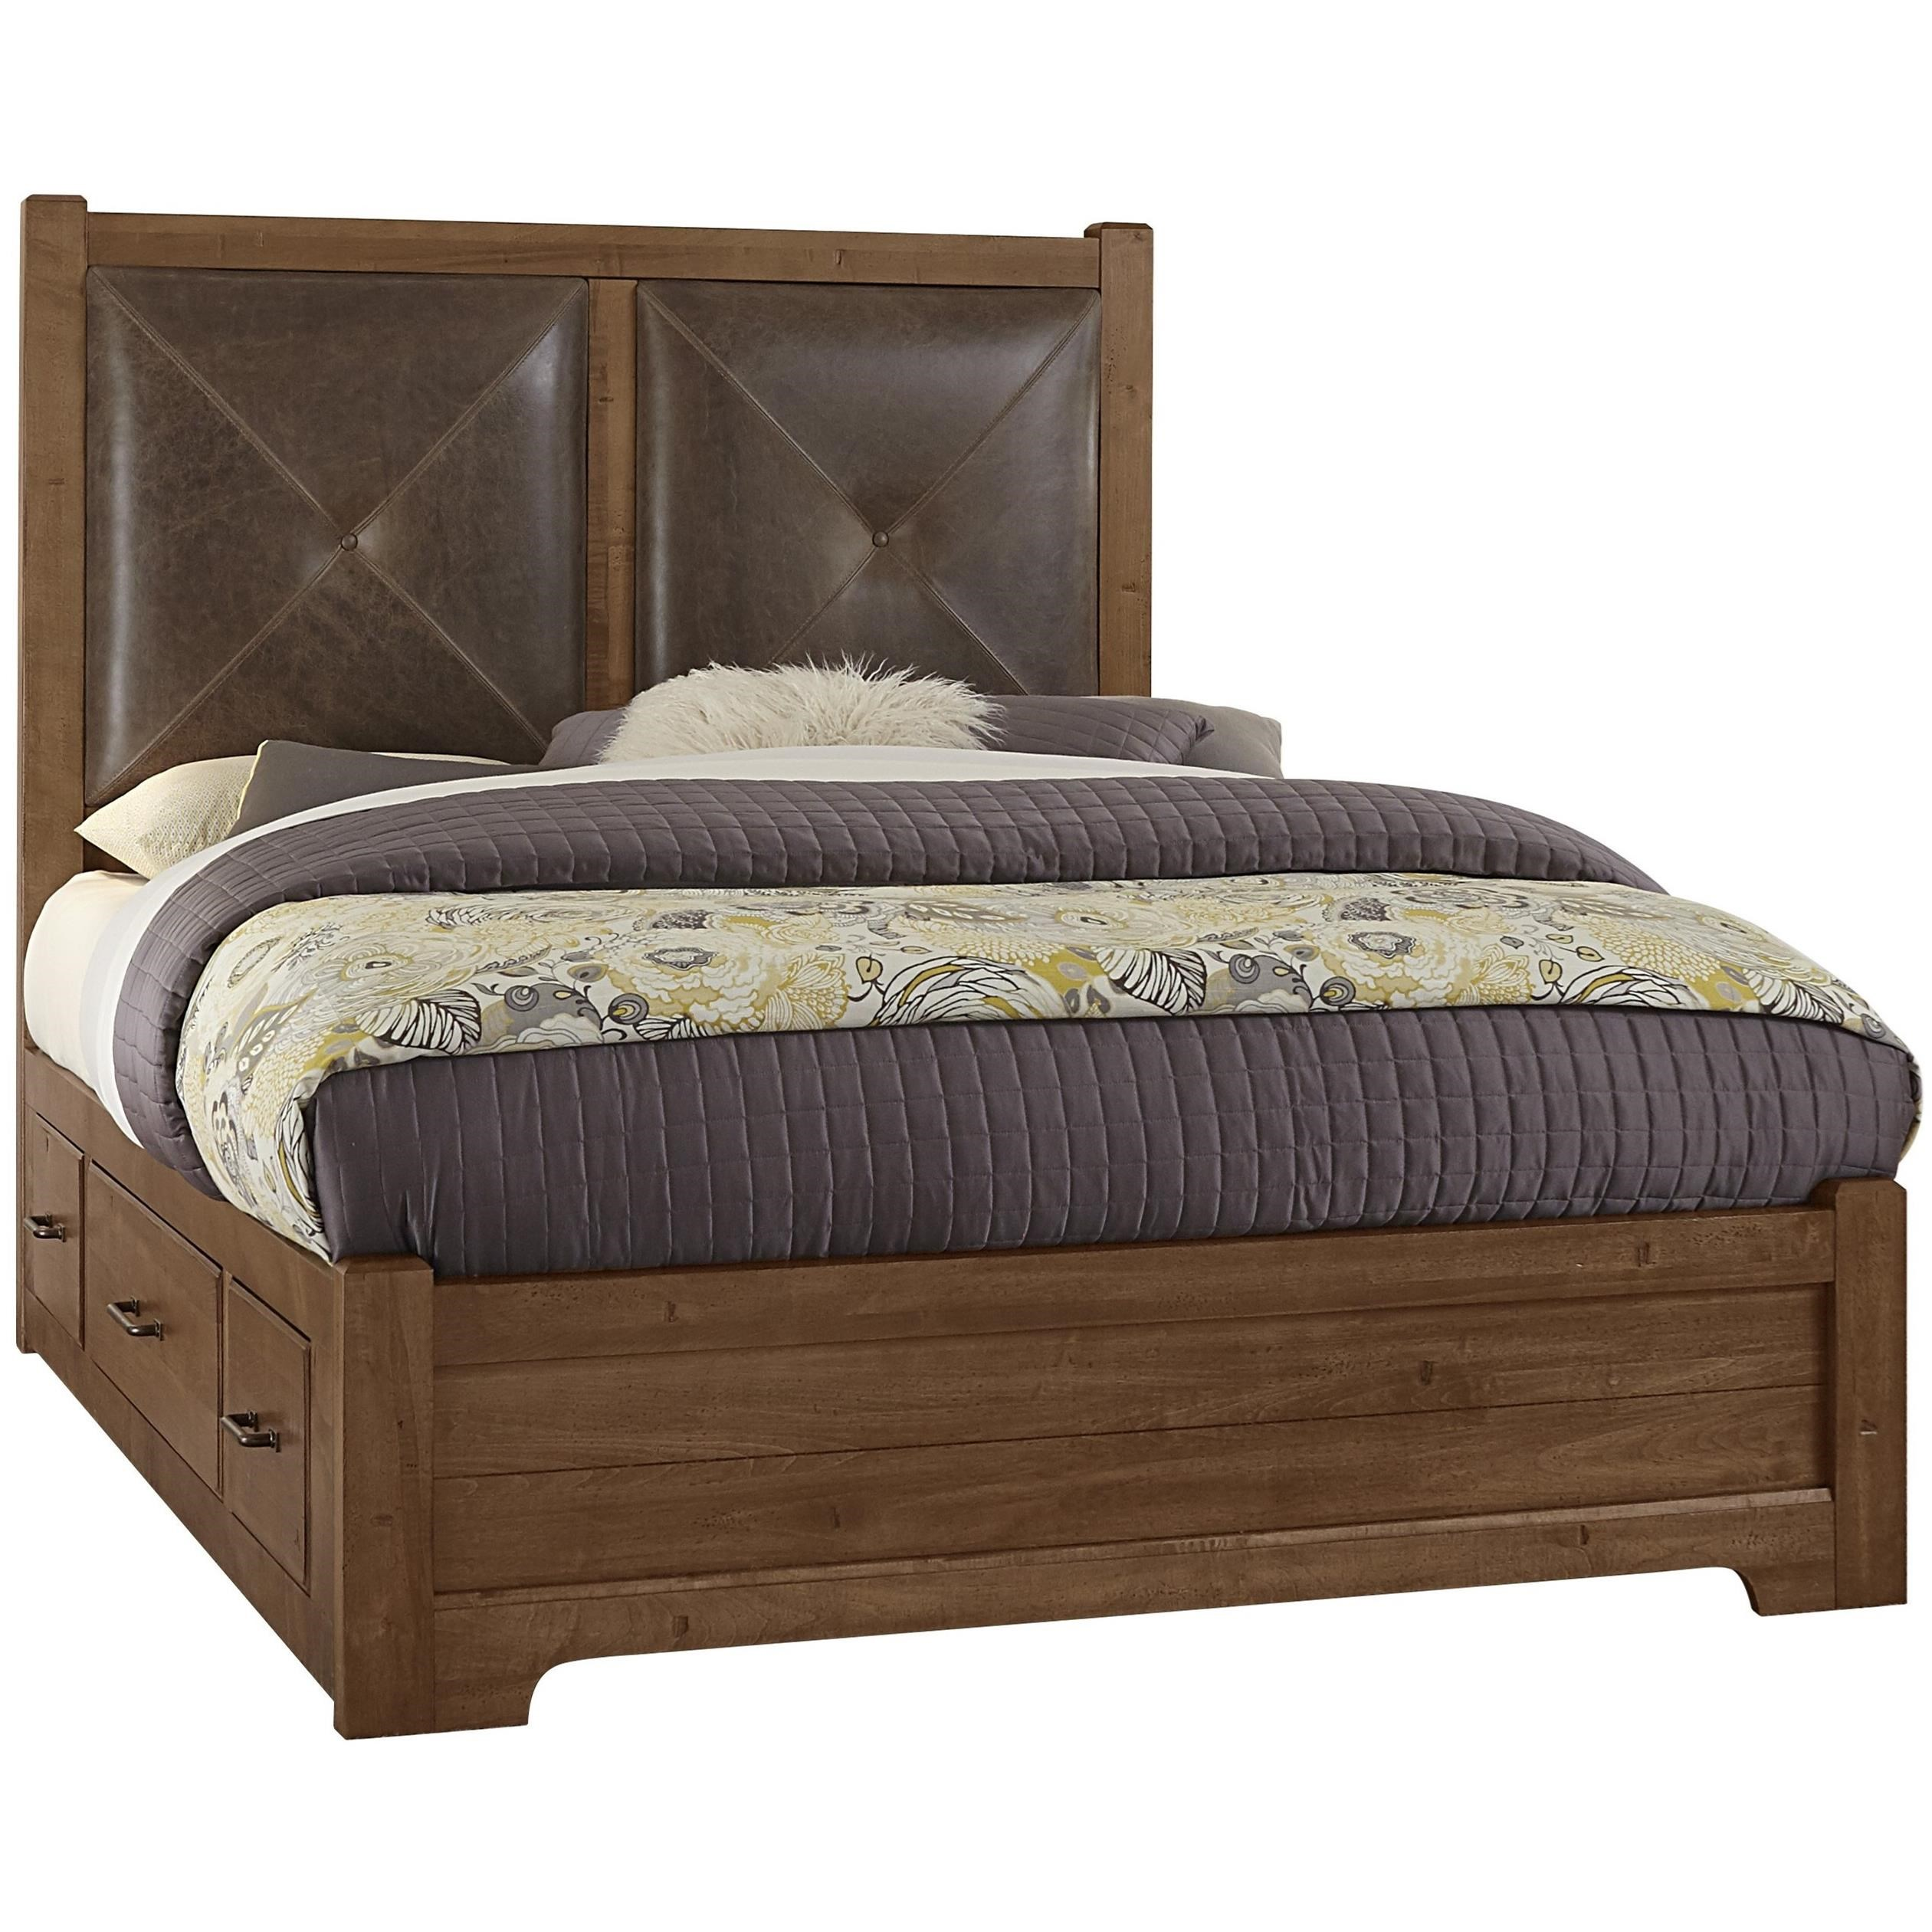 King Leather Bed with Side Storage